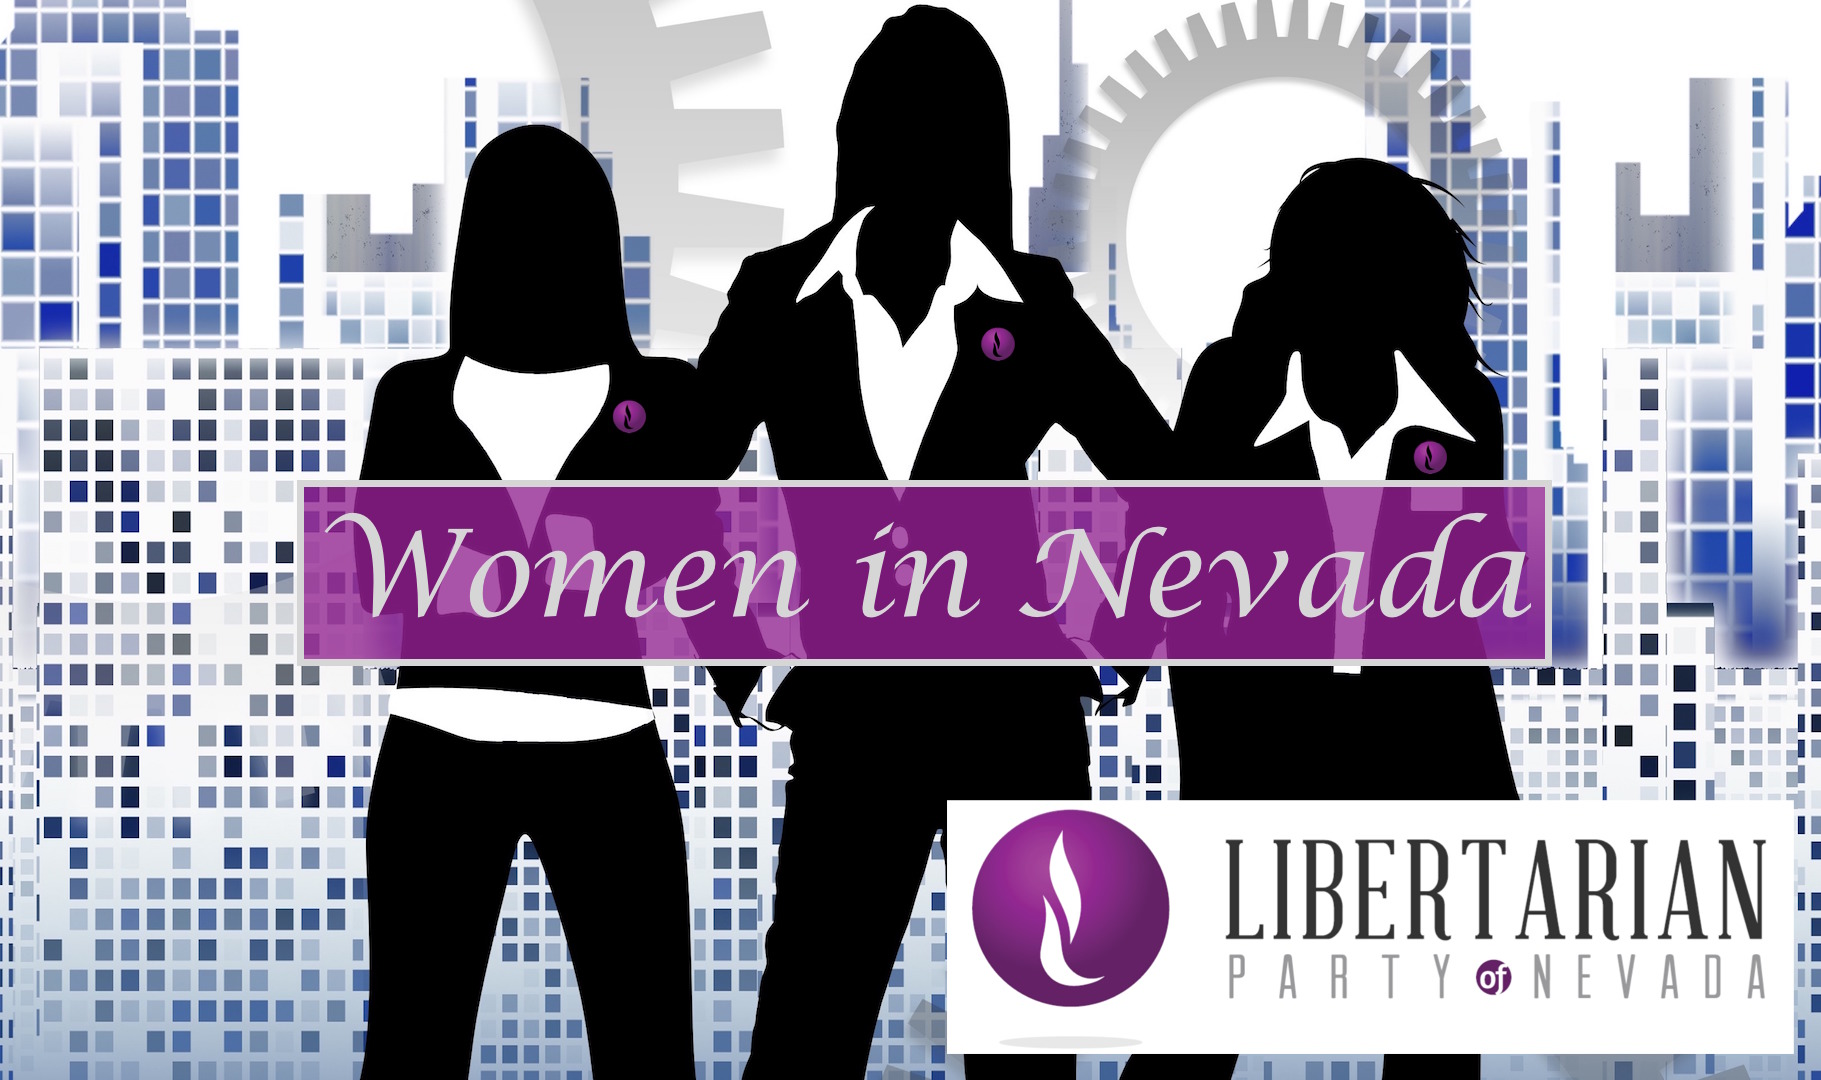 Women_in_Nevada.jpeg